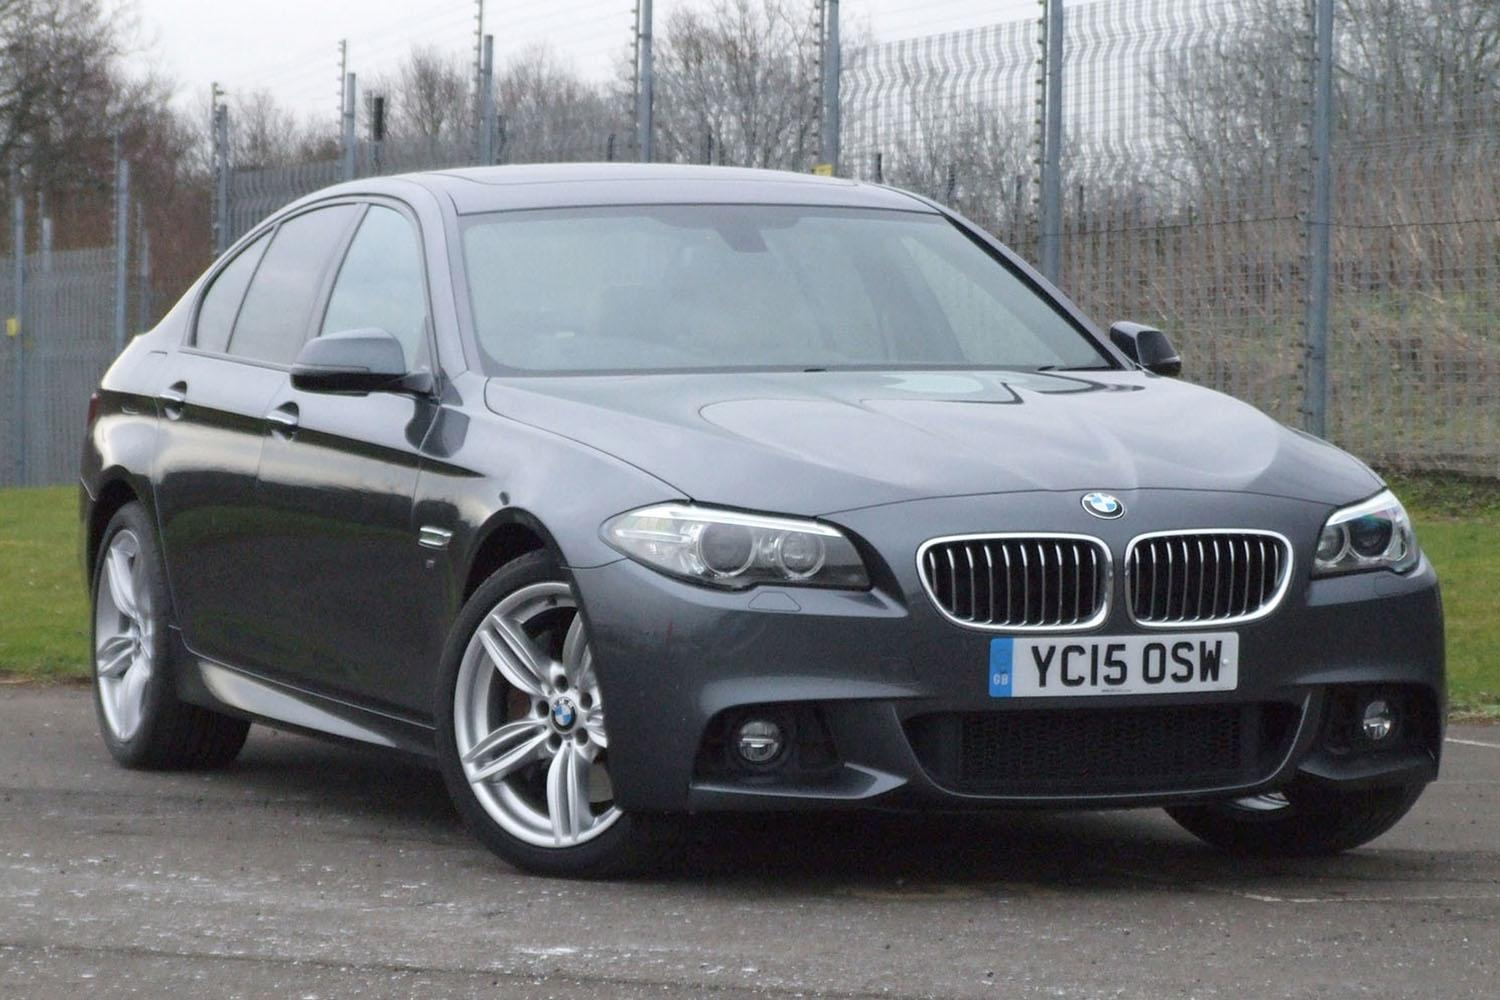 BMW 5 Series Saloon YC15OSW - Image 1